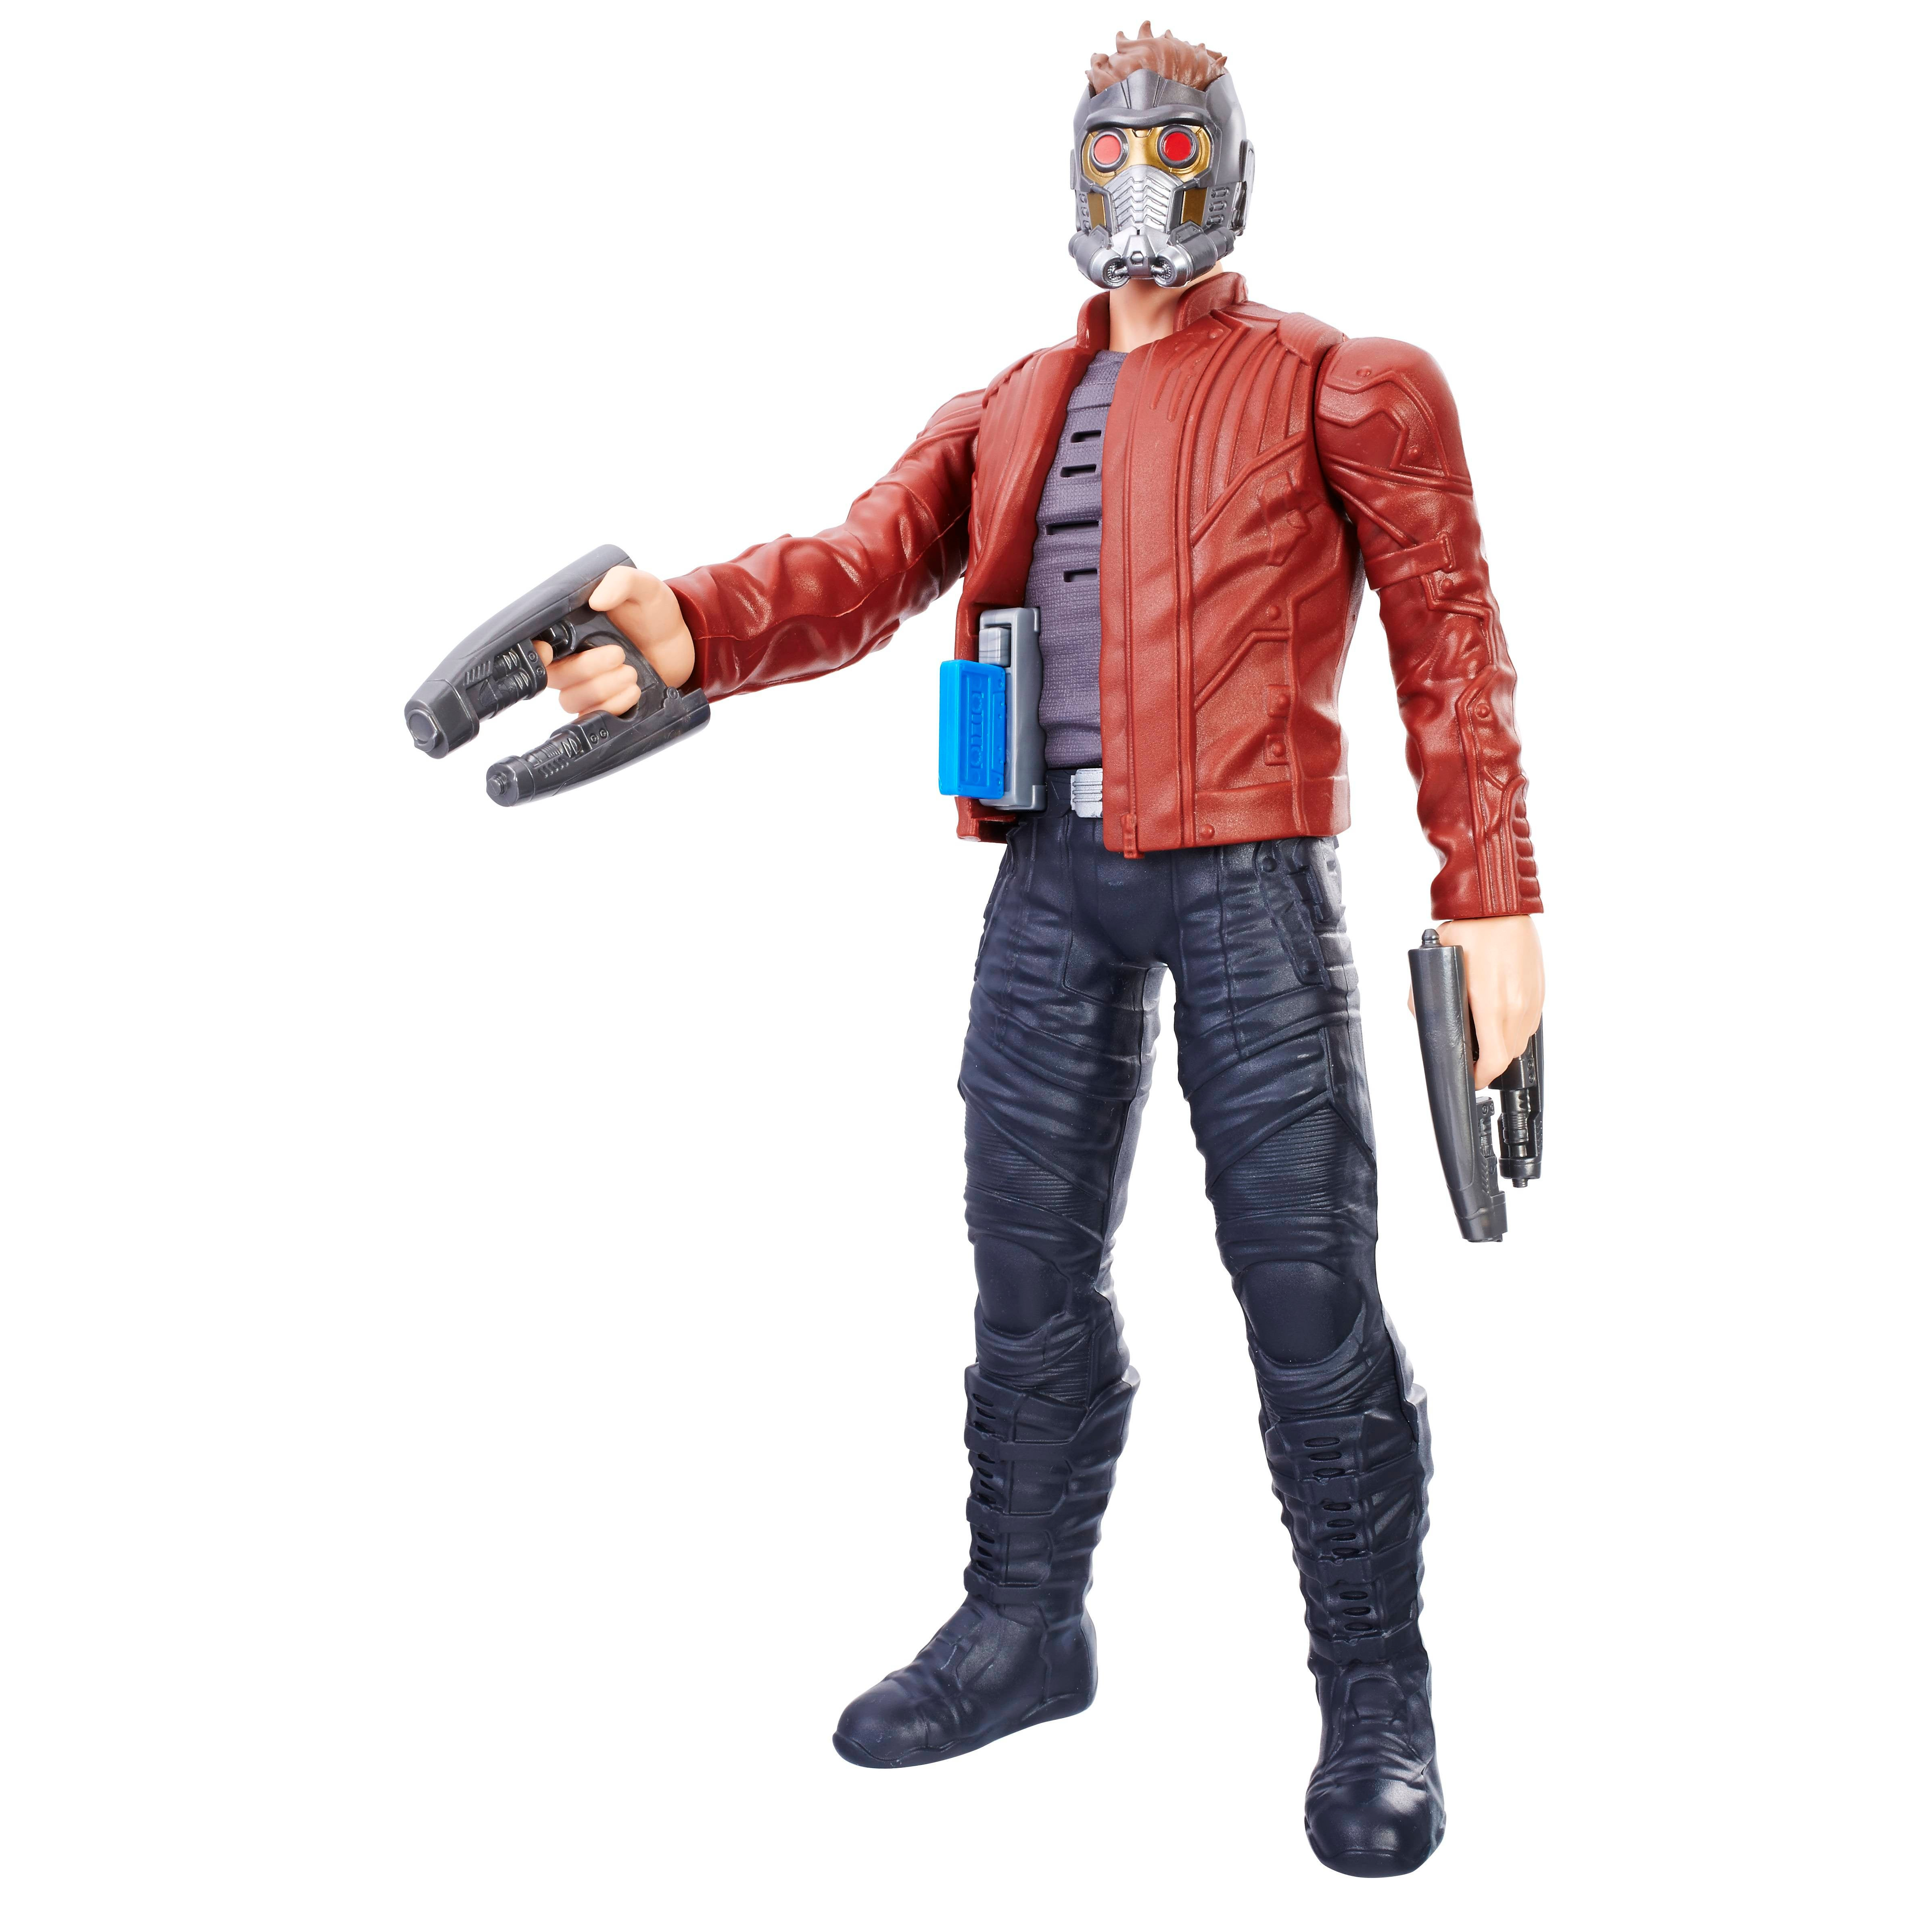 MARVEL GUARDIANS OF THE GALAXY VOL. 2 TITAN HERO ELECTRONIC MUSIC MIX STAR-LORD Figure - oop